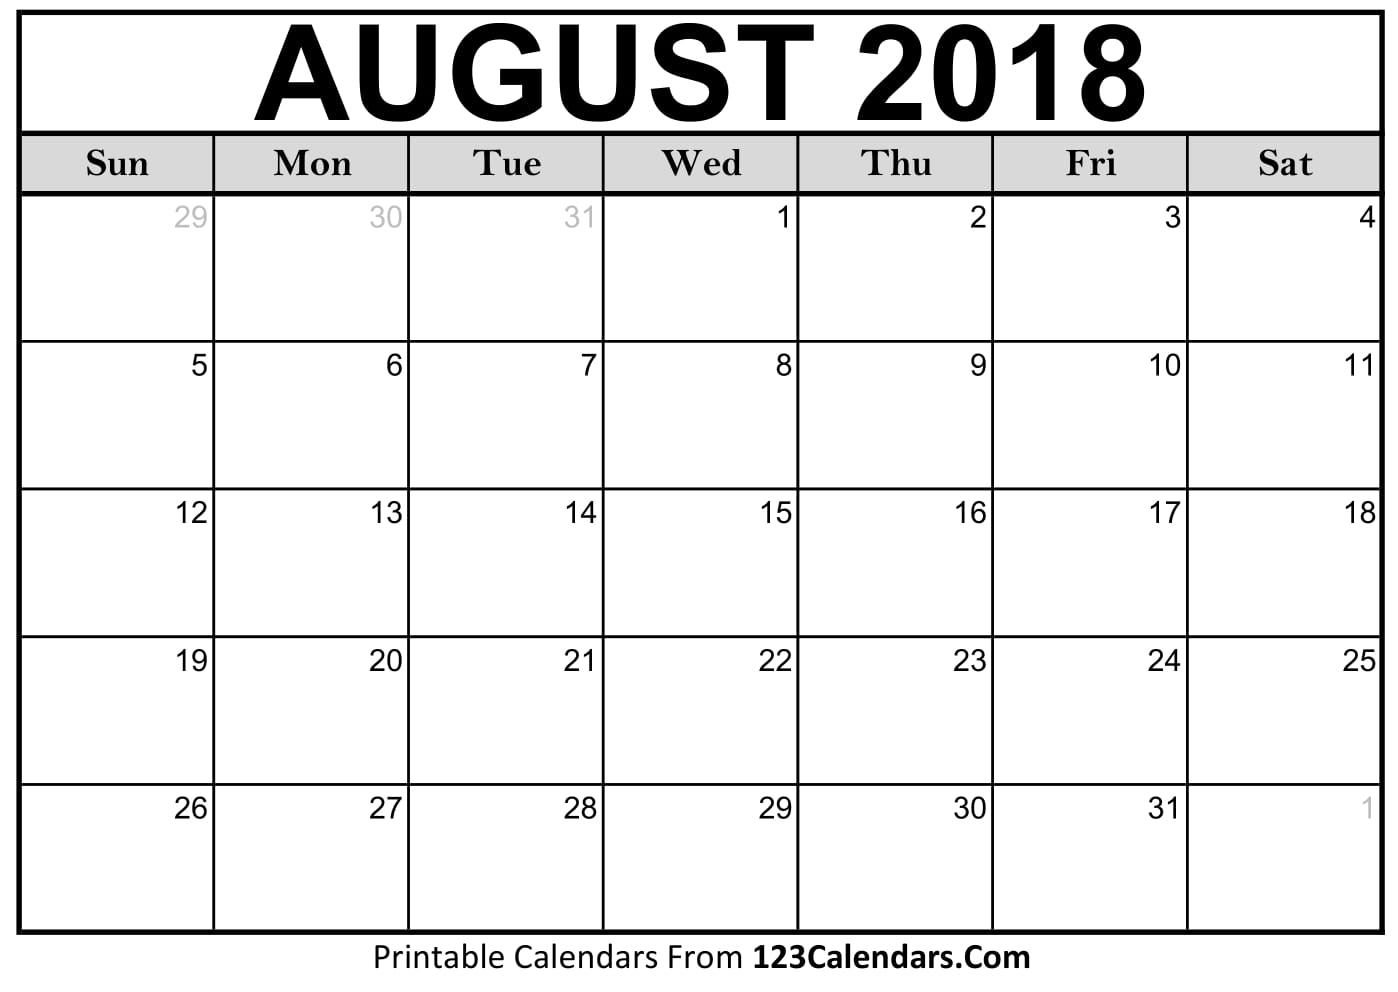 Aug 2018 Calendar Printable   Hauck Mansion within Pretty Blank Augst Calender